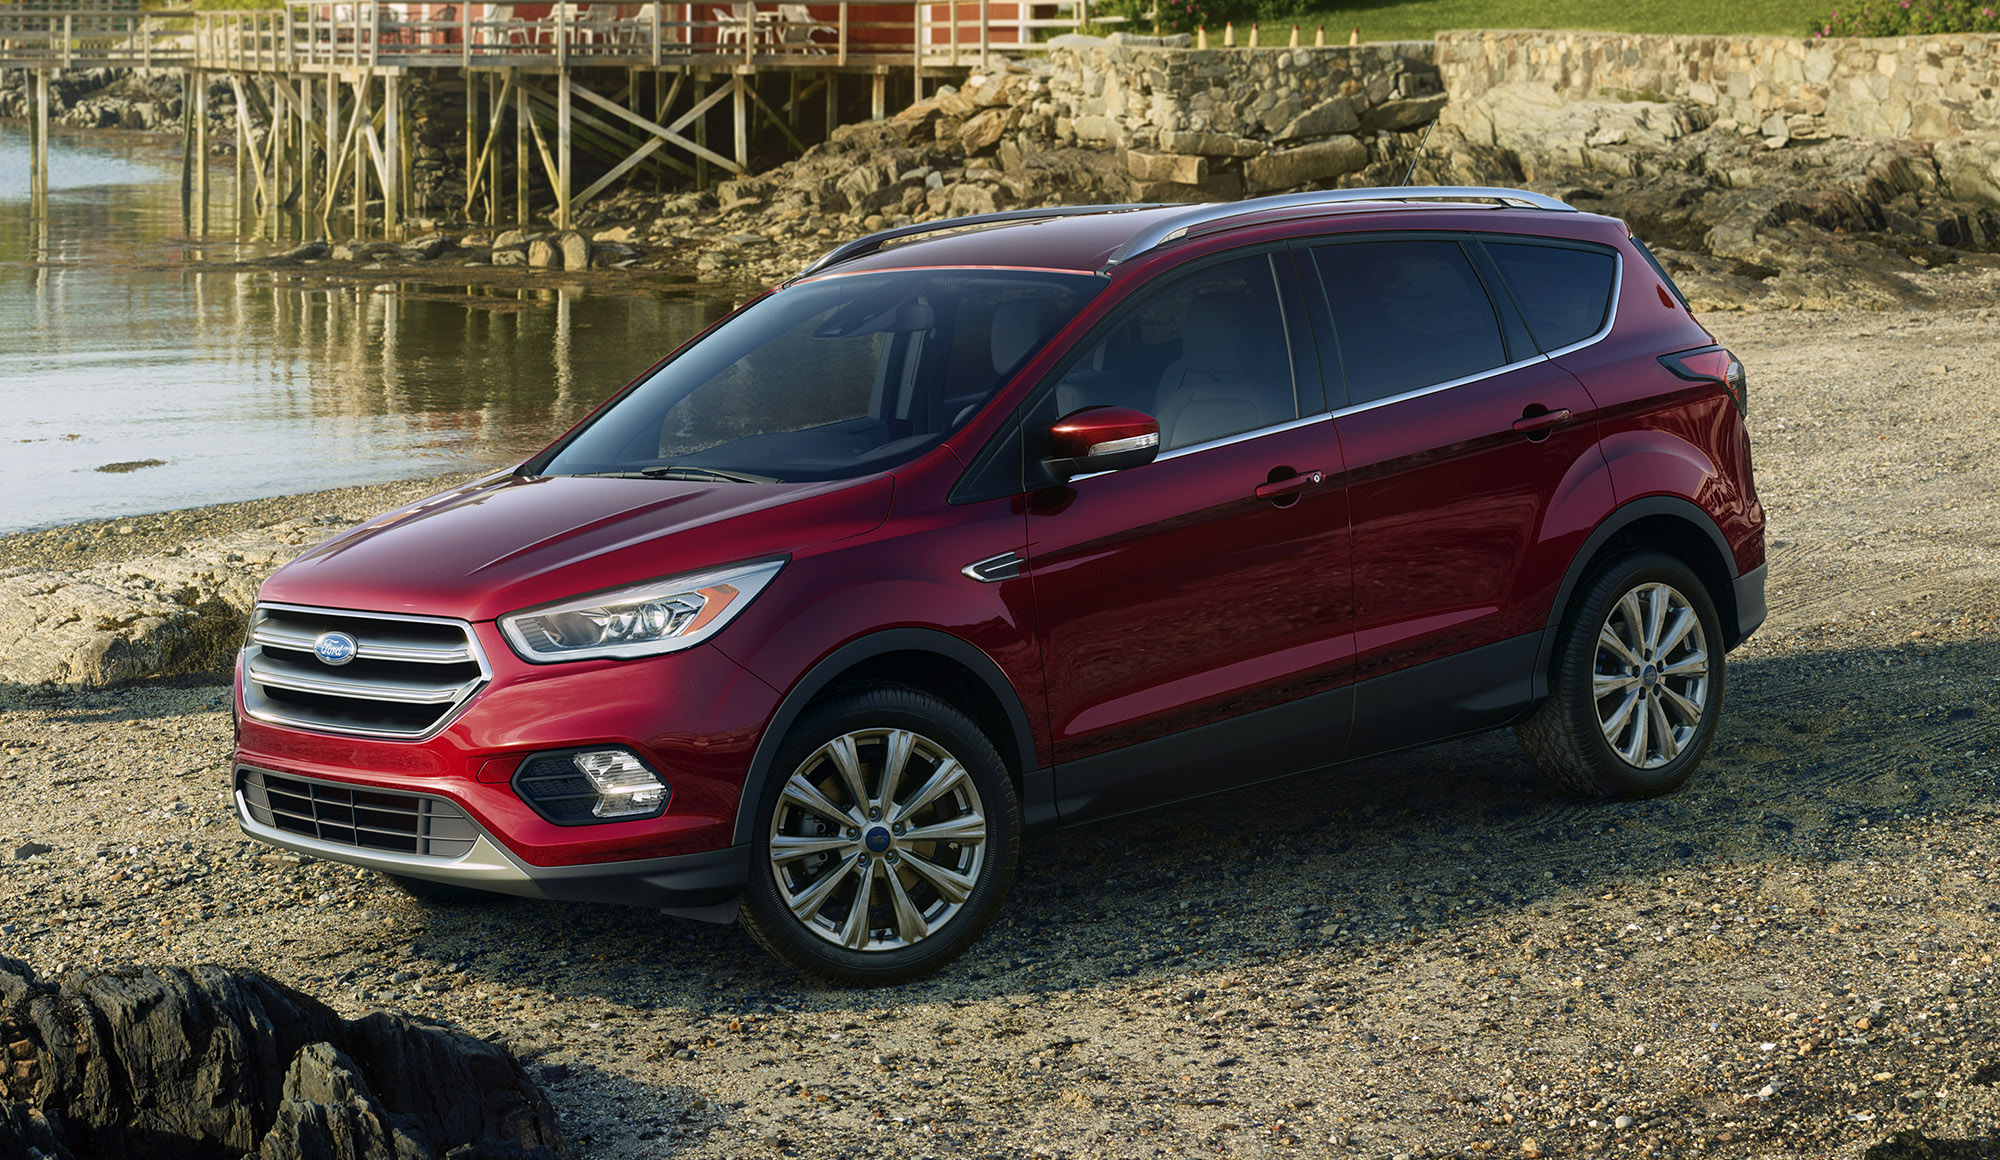 2017 ford kuga revealed as facelifted escape new looks new sync 3 connect photos 1 of 11. Black Bedroom Furniture Sets. Home Design Ideas